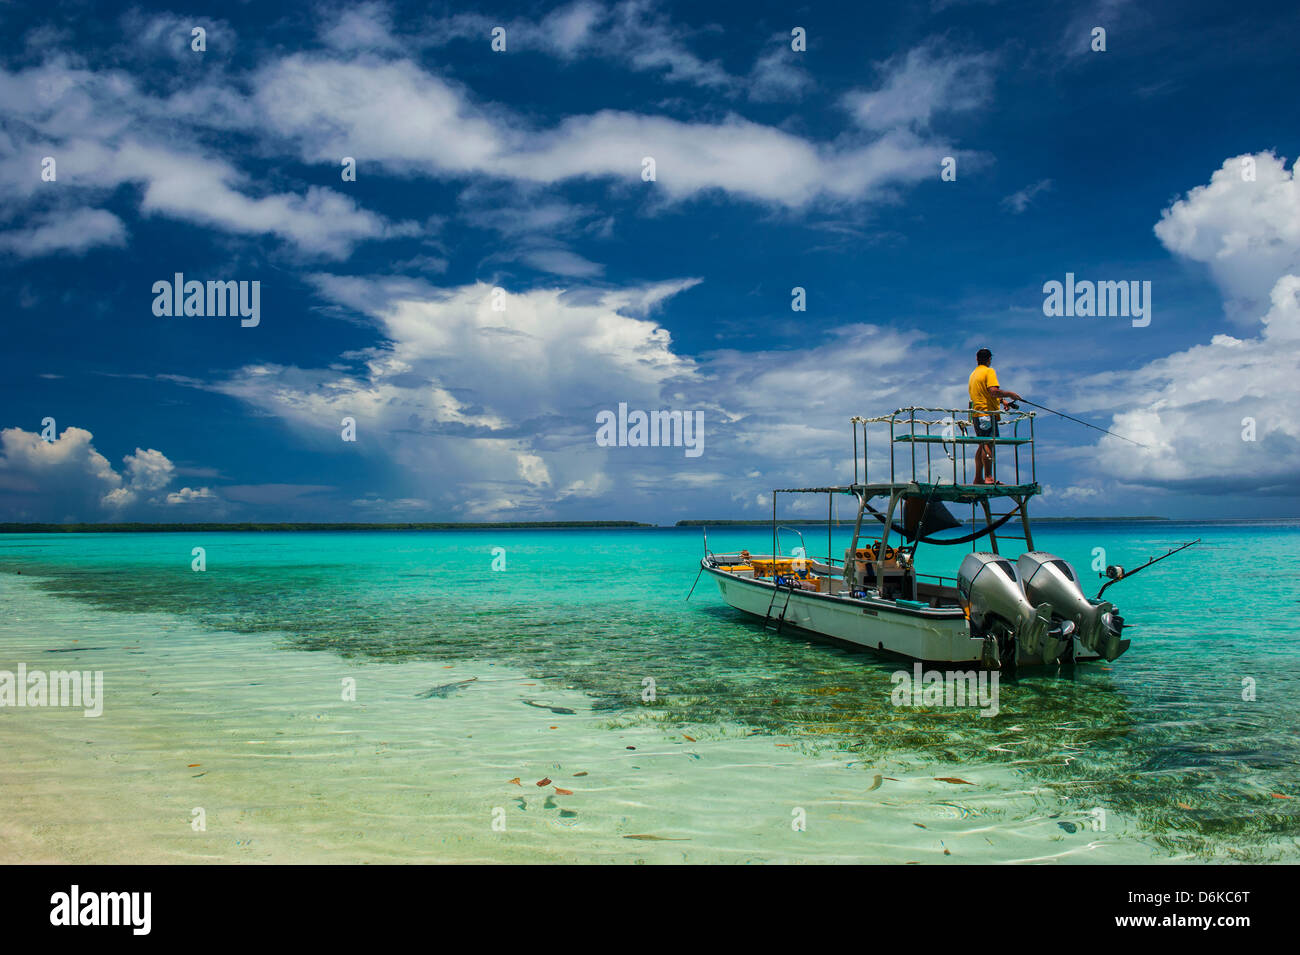 Little motor boat in the turquoise waters of the Ant Atoll, Pohnpei, Micronesia, Pacific Stock Photo